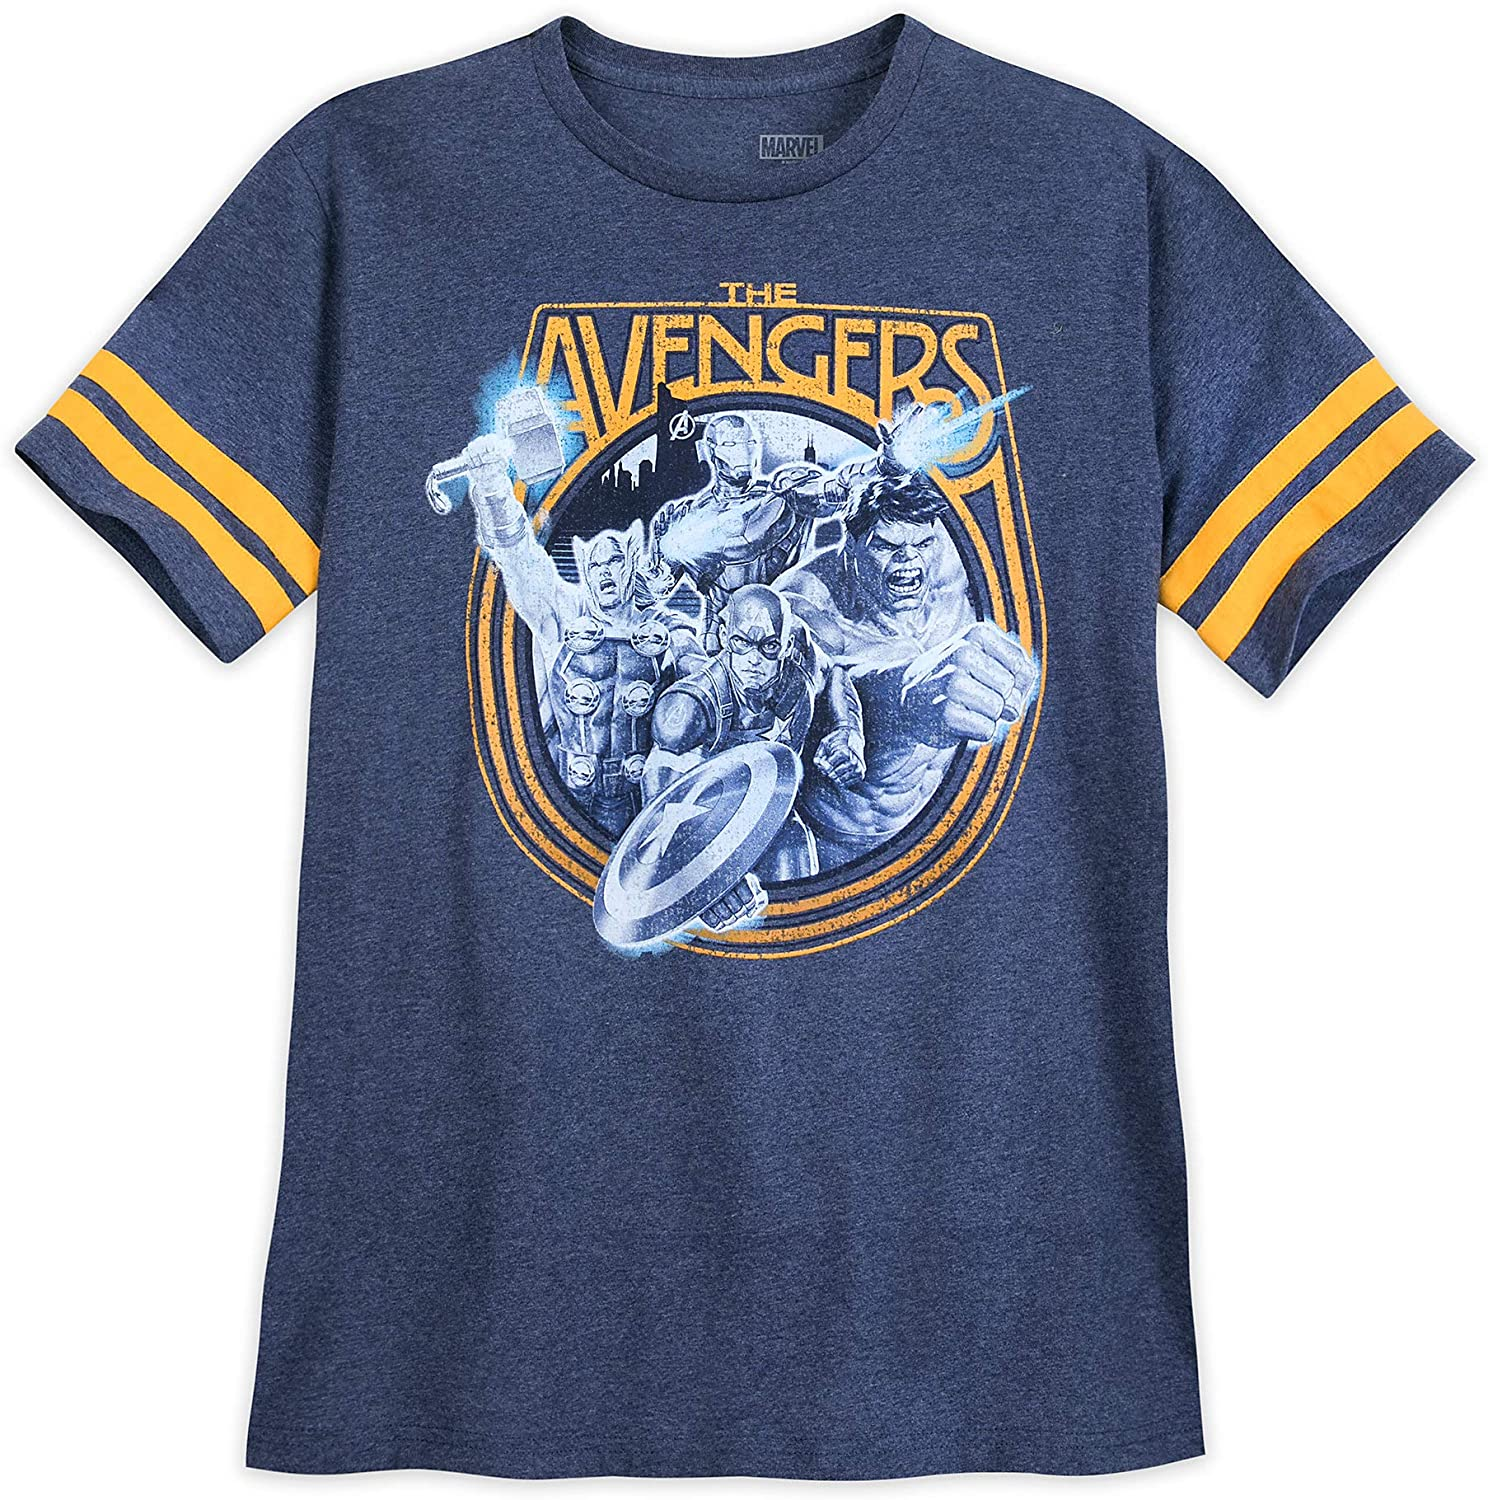 Marvel The Avengers Football T-Shirt for Men Multi